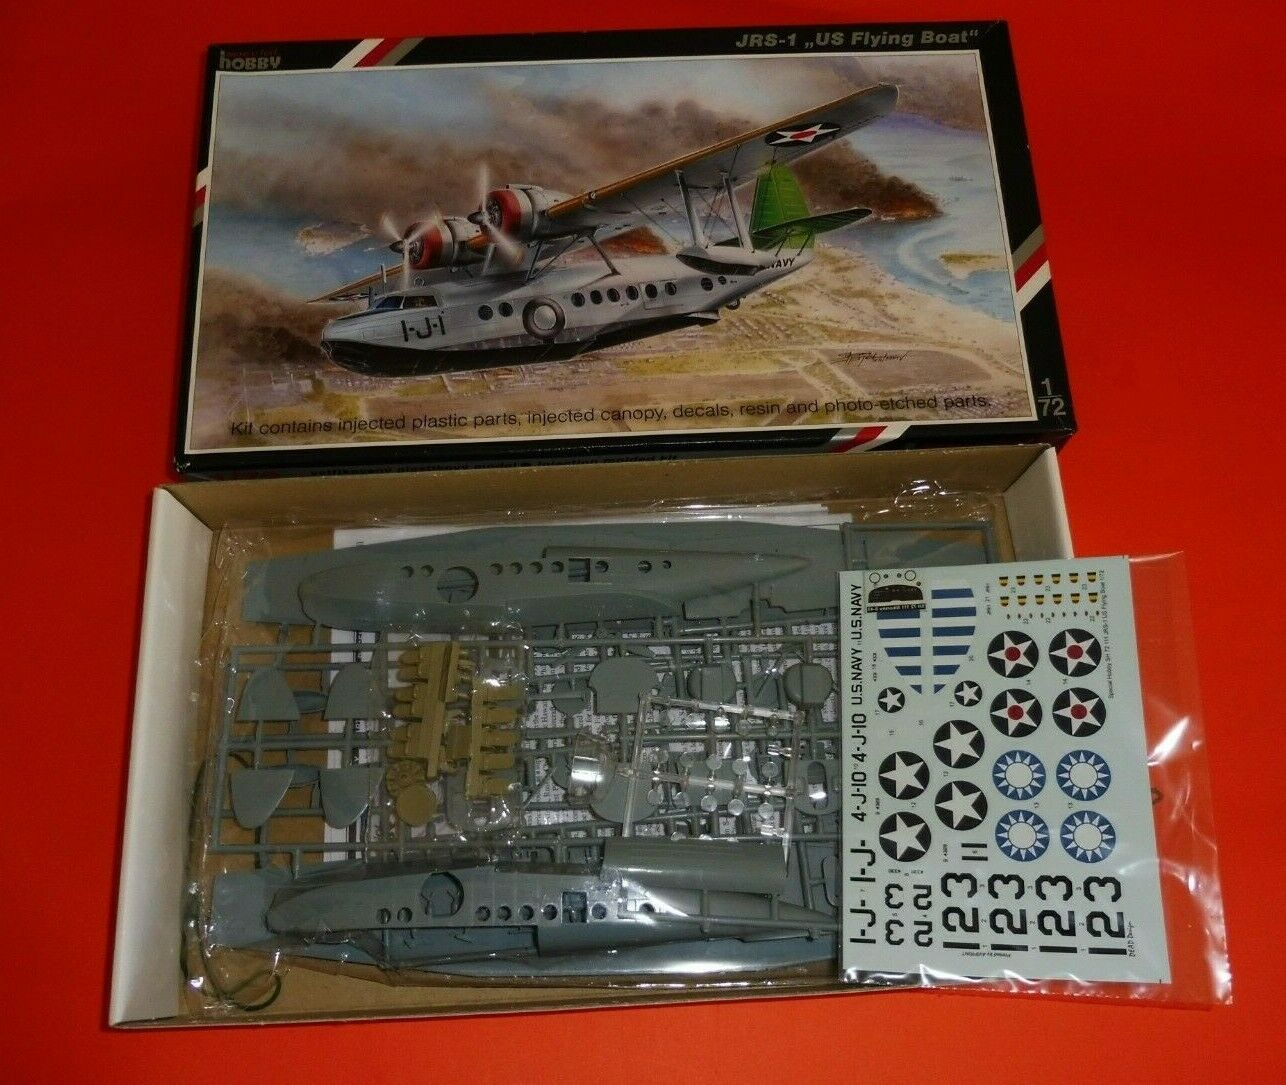 ZF647 Hobby special 1/72 maquette avion SH72111 JRS-1 US Flying Boat